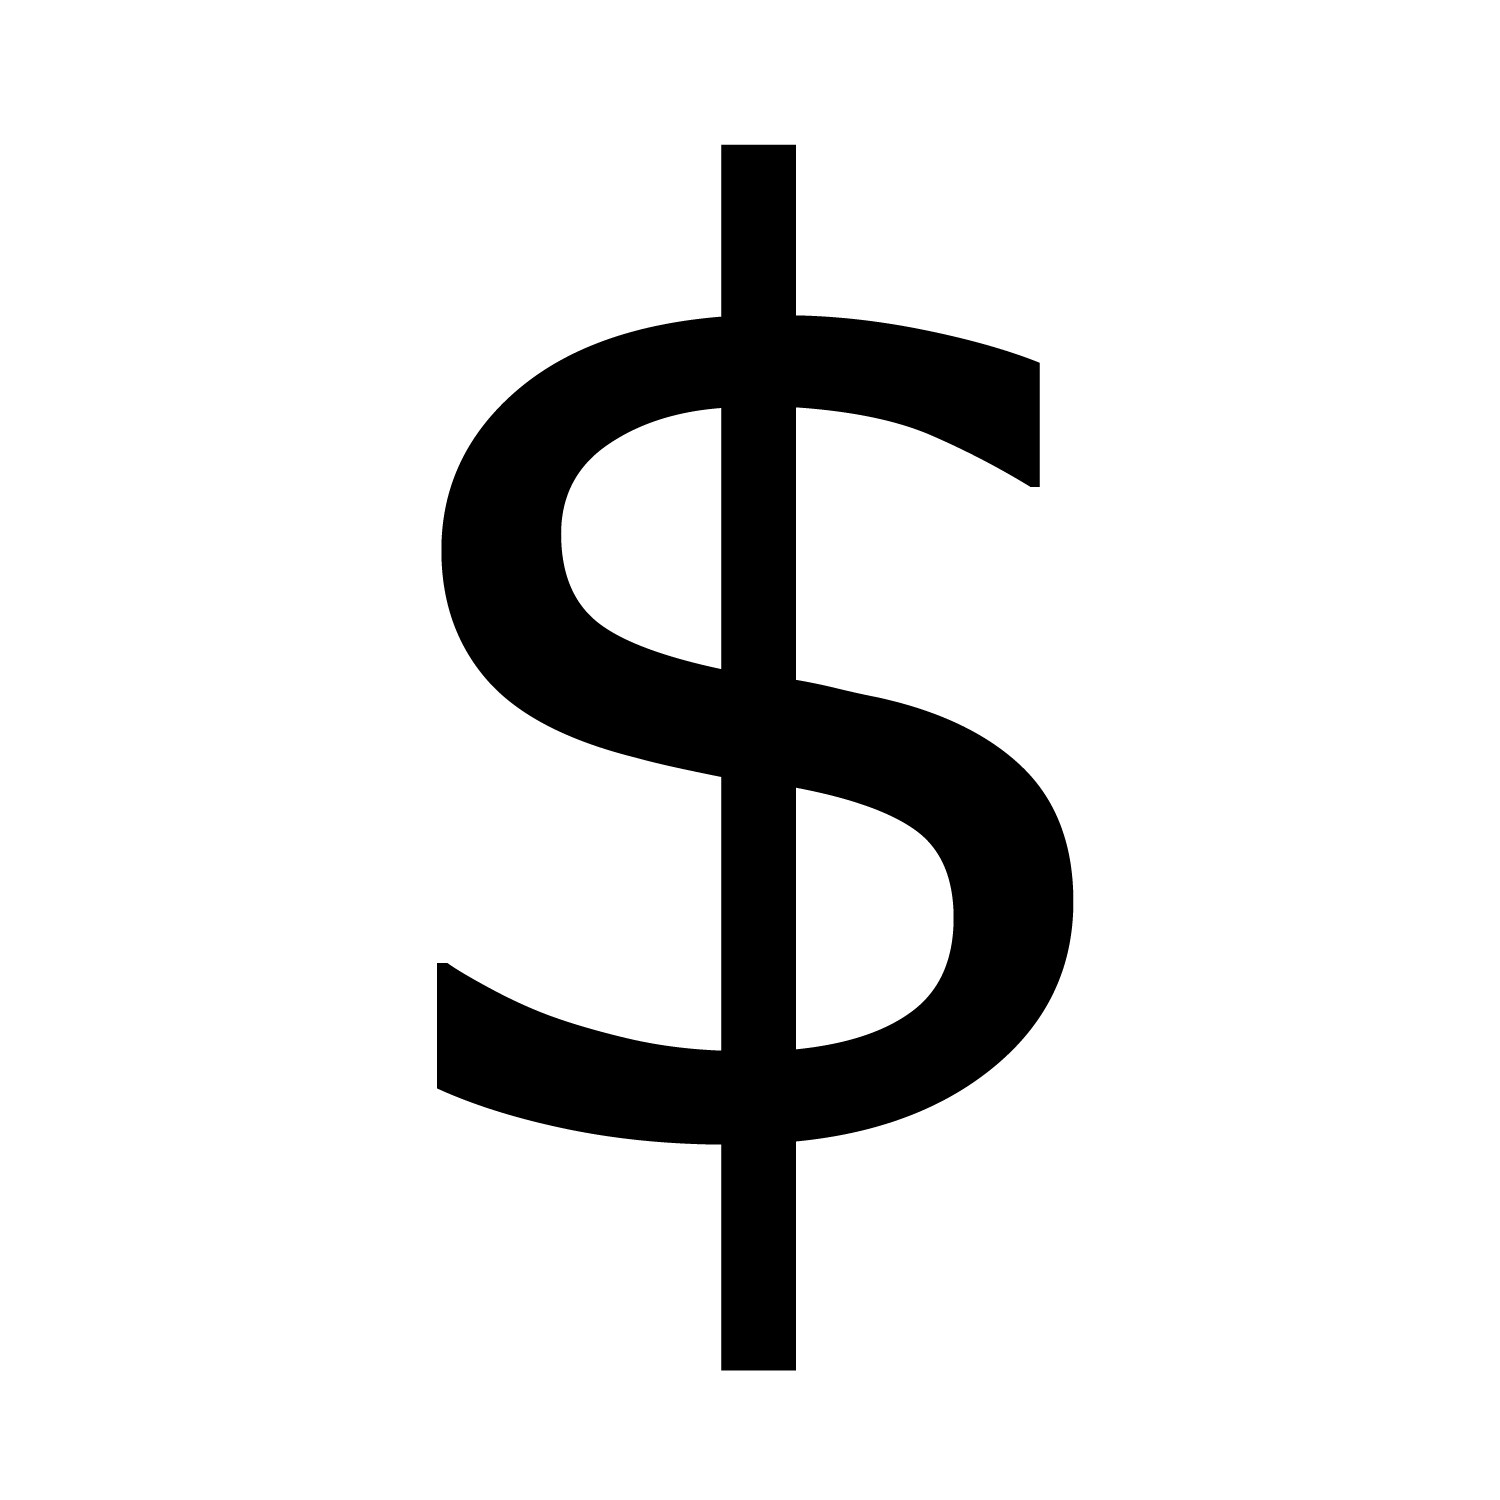 Dollar transparent black png. Icon